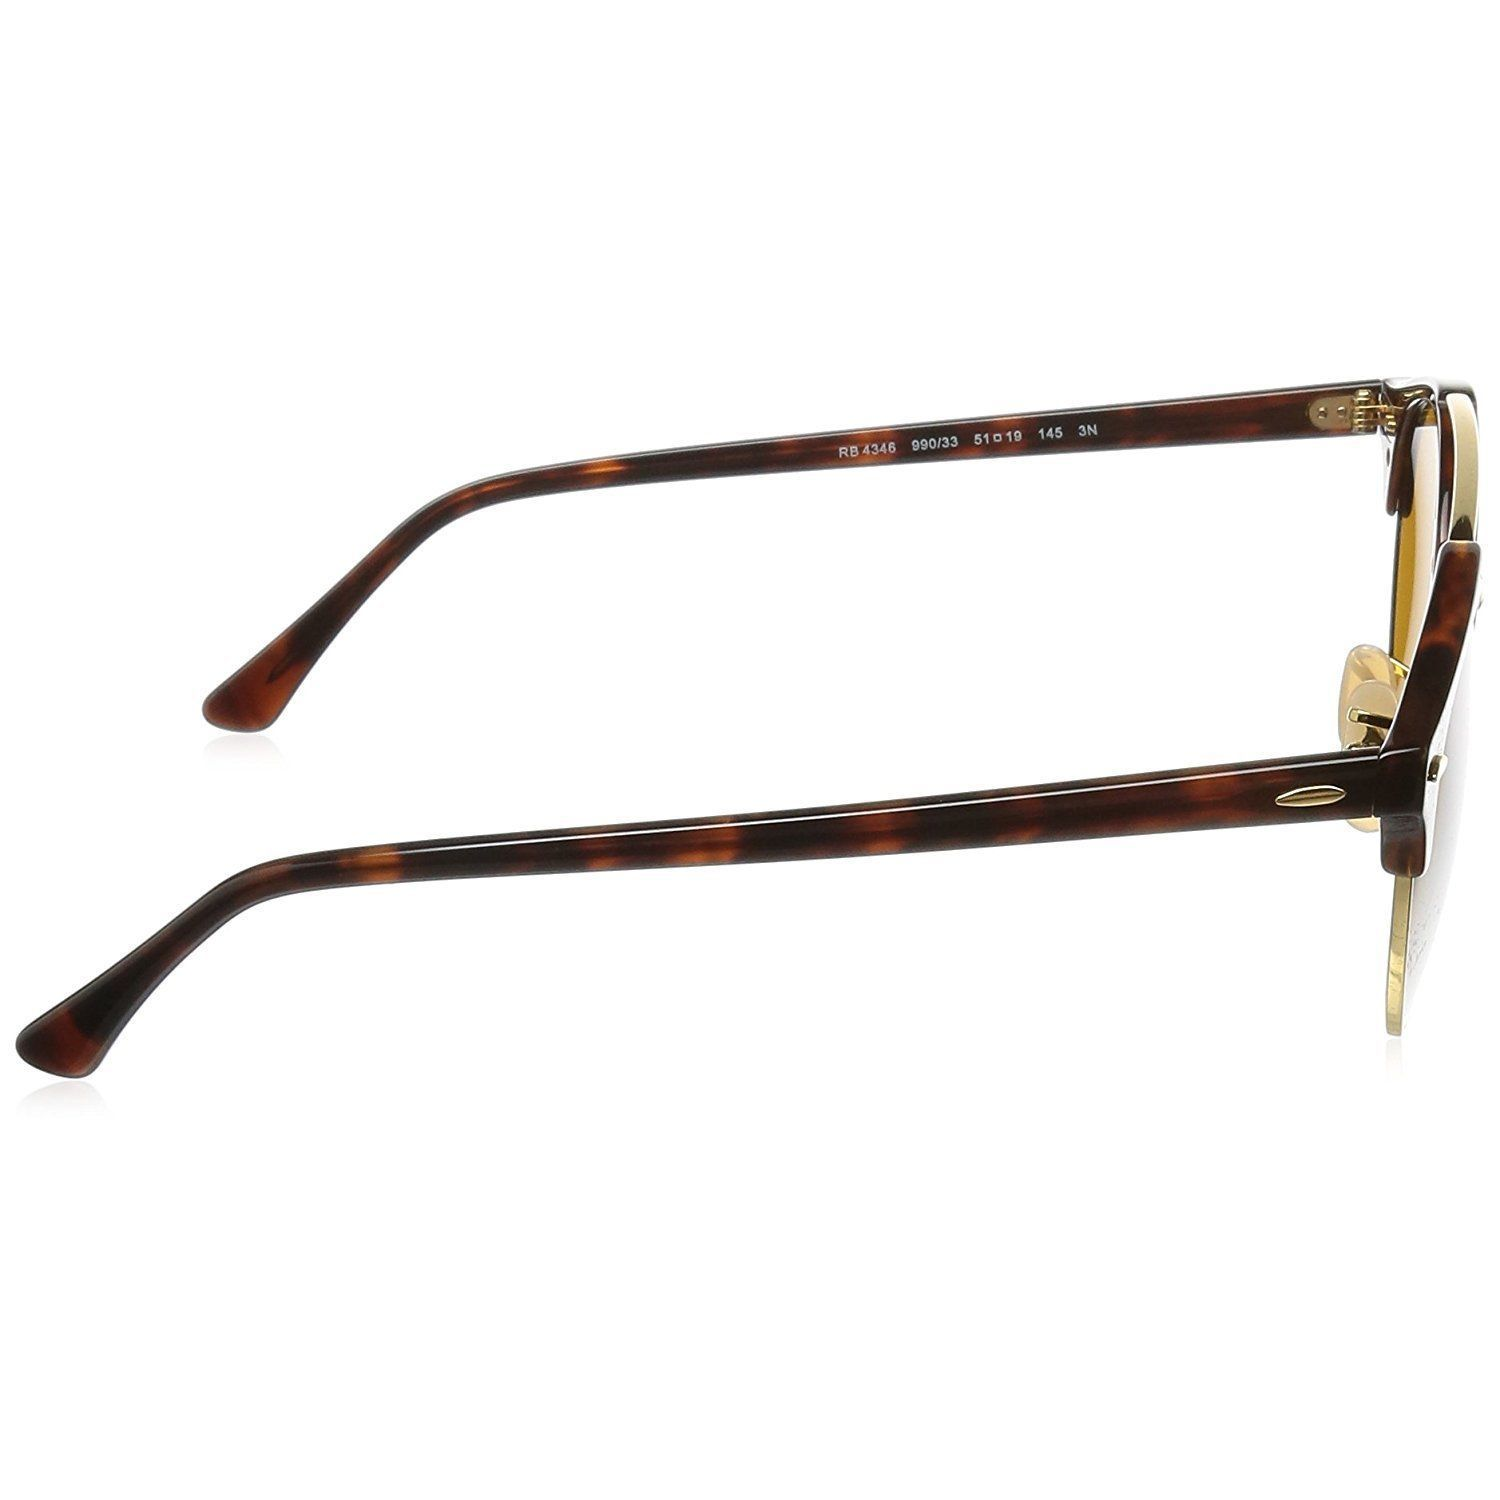 f144a7b8339f2 Shop Ray-Ban Clubround Double Bridge RB4346 Men s Tortoise Frame Brown Lens  Sunglasses - Free Shipping Today - Overstock - 15287220